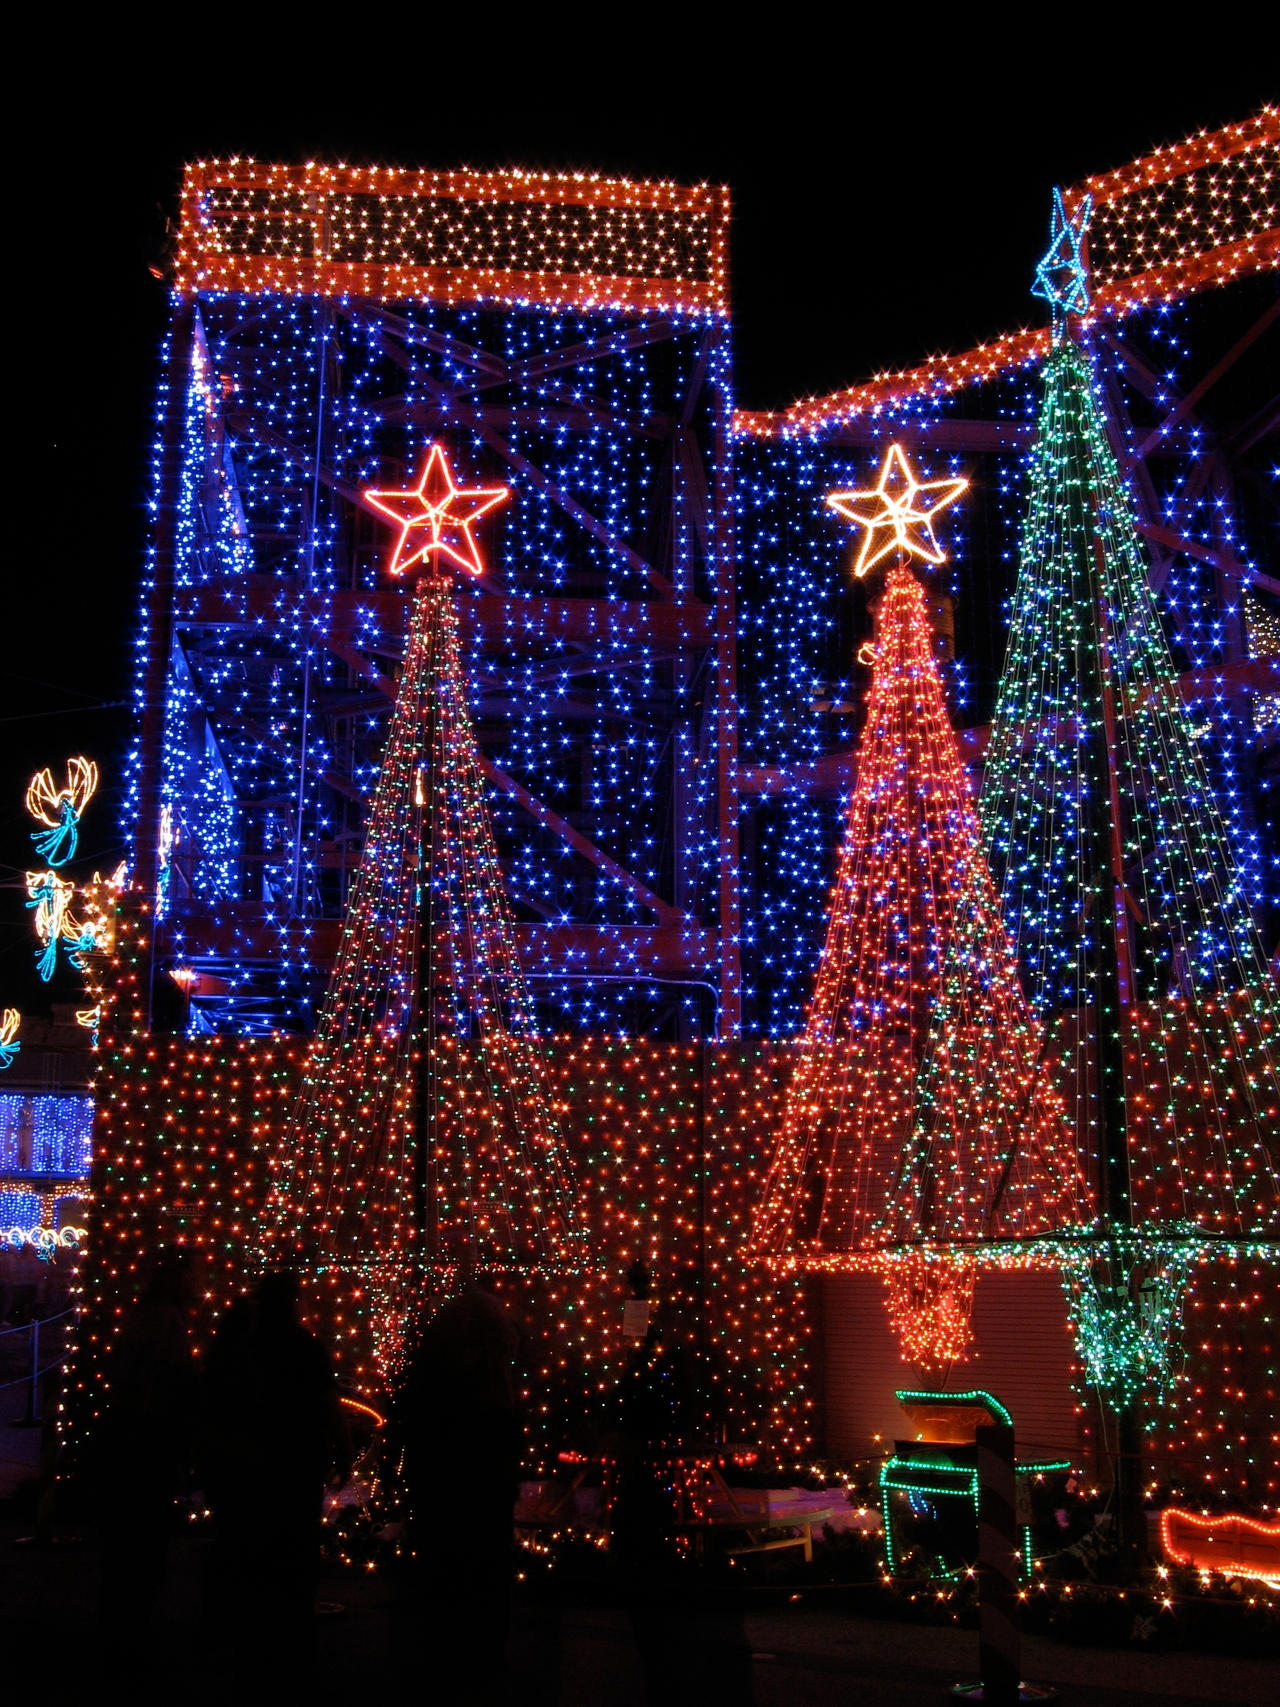 Studios Osborne Lights 45 by AreteStock